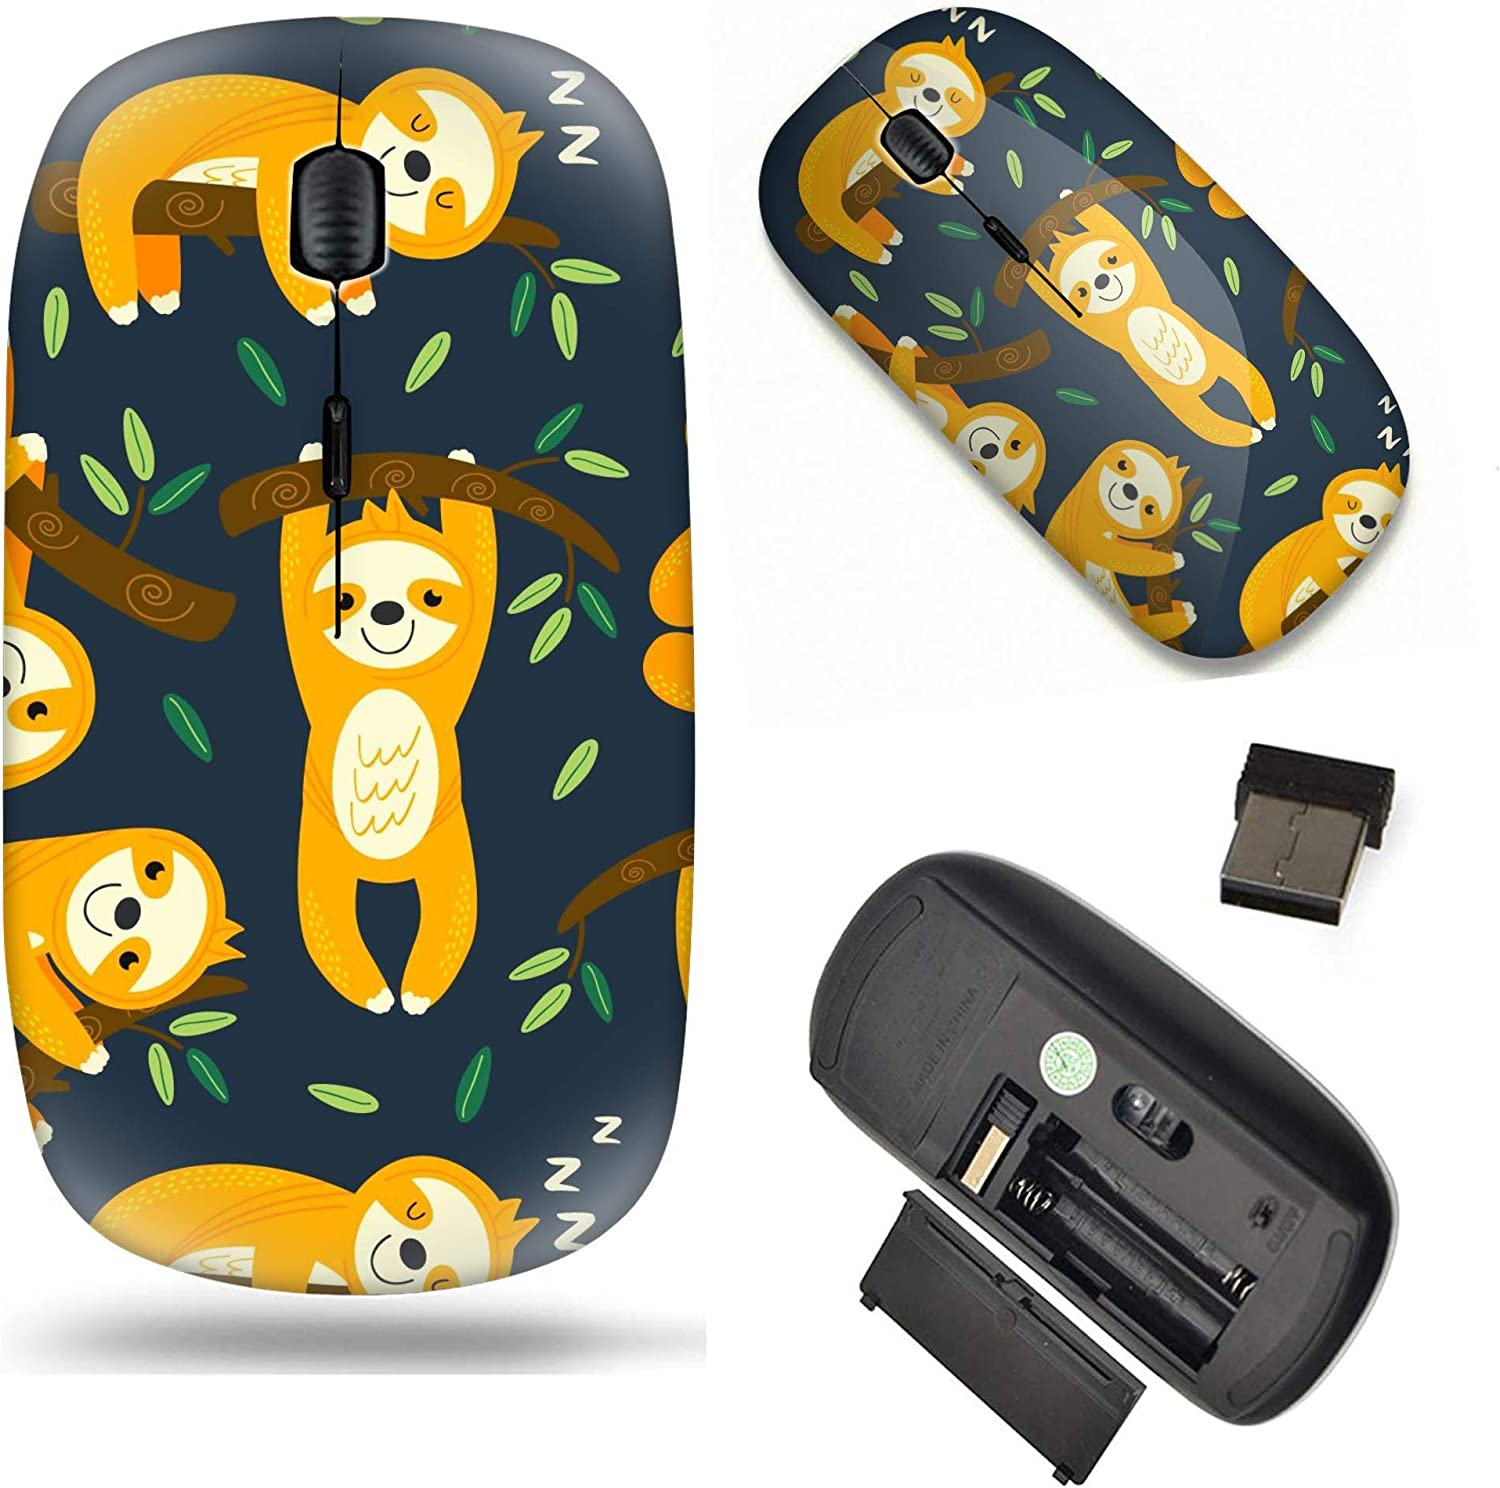 Unique Pattern Optical Mice Mobile Wireless Mouse 2.4G Portable for Notebook, PC, Laptop, Computer - Cartoon Pattern with Funny Sloths